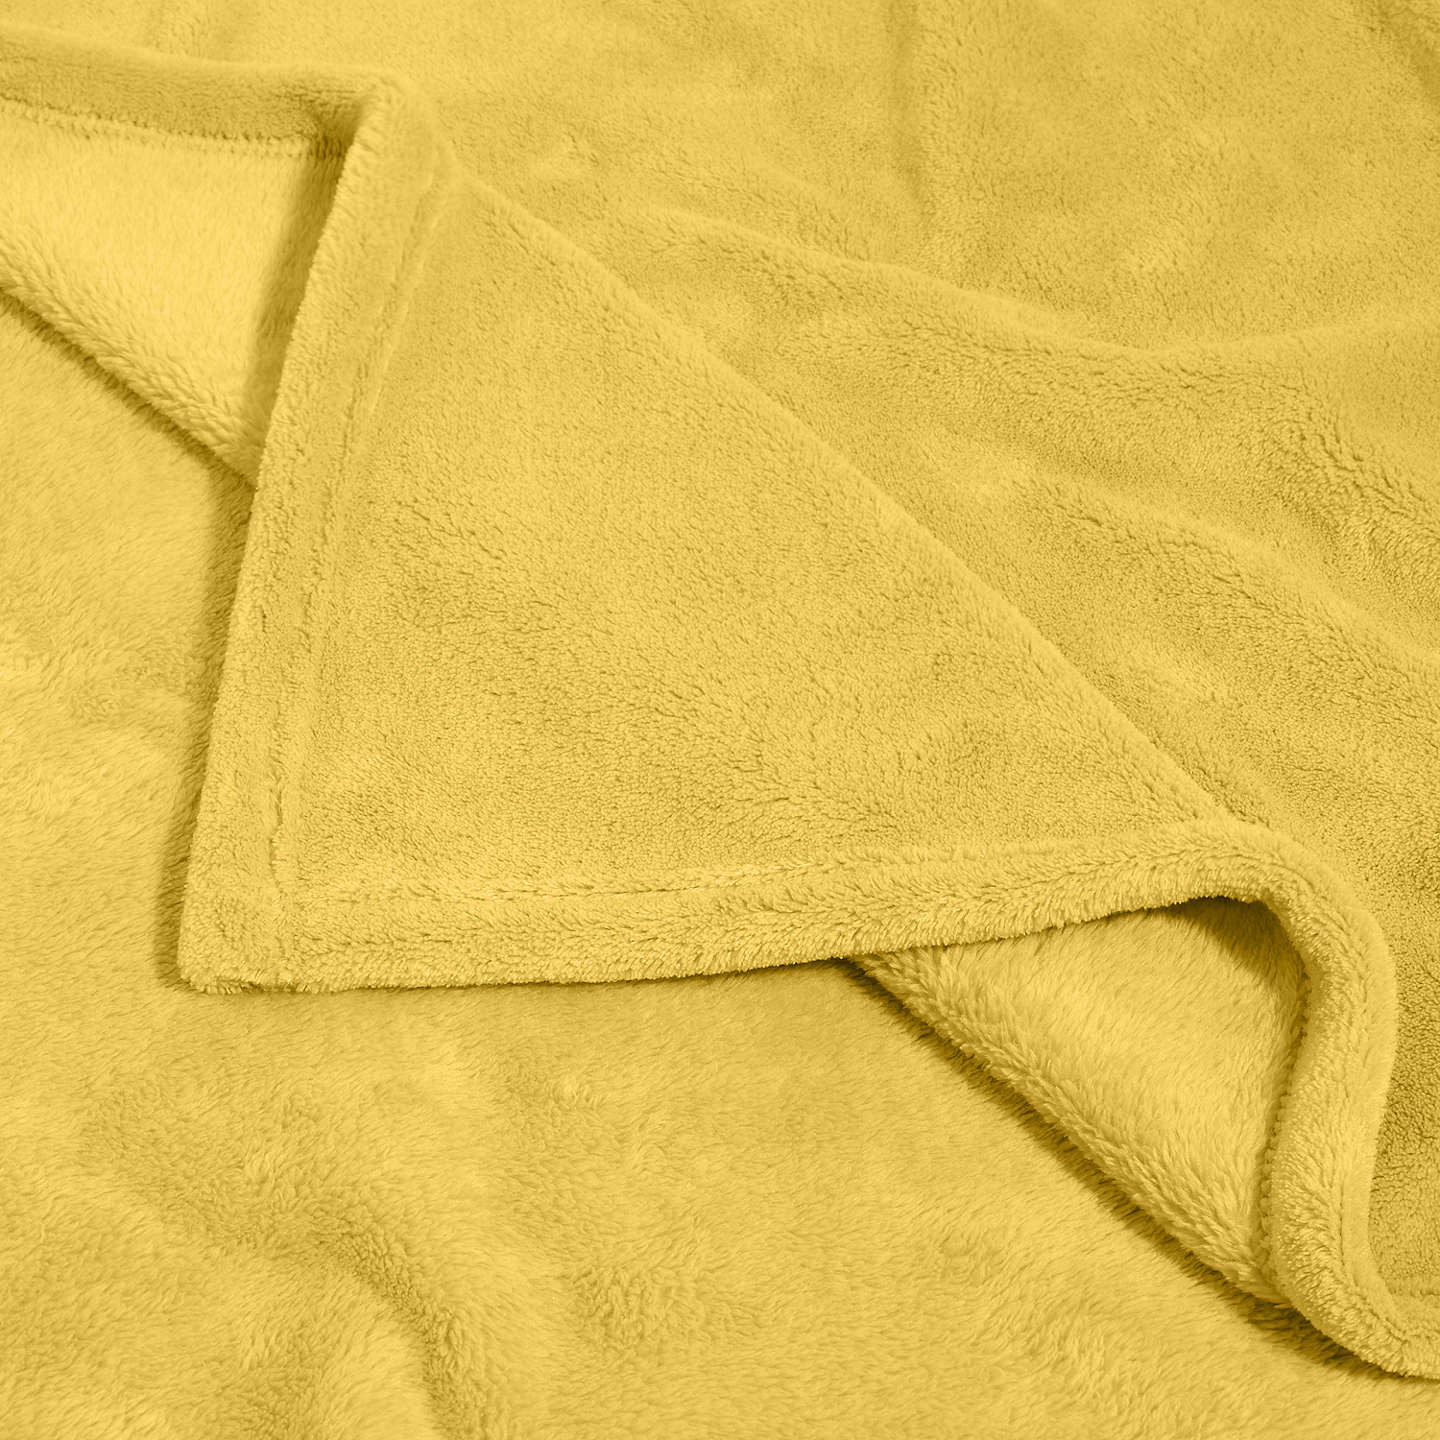 BuyJohn Lewis Fleece Throw, Citrine Online at johnlewis.com